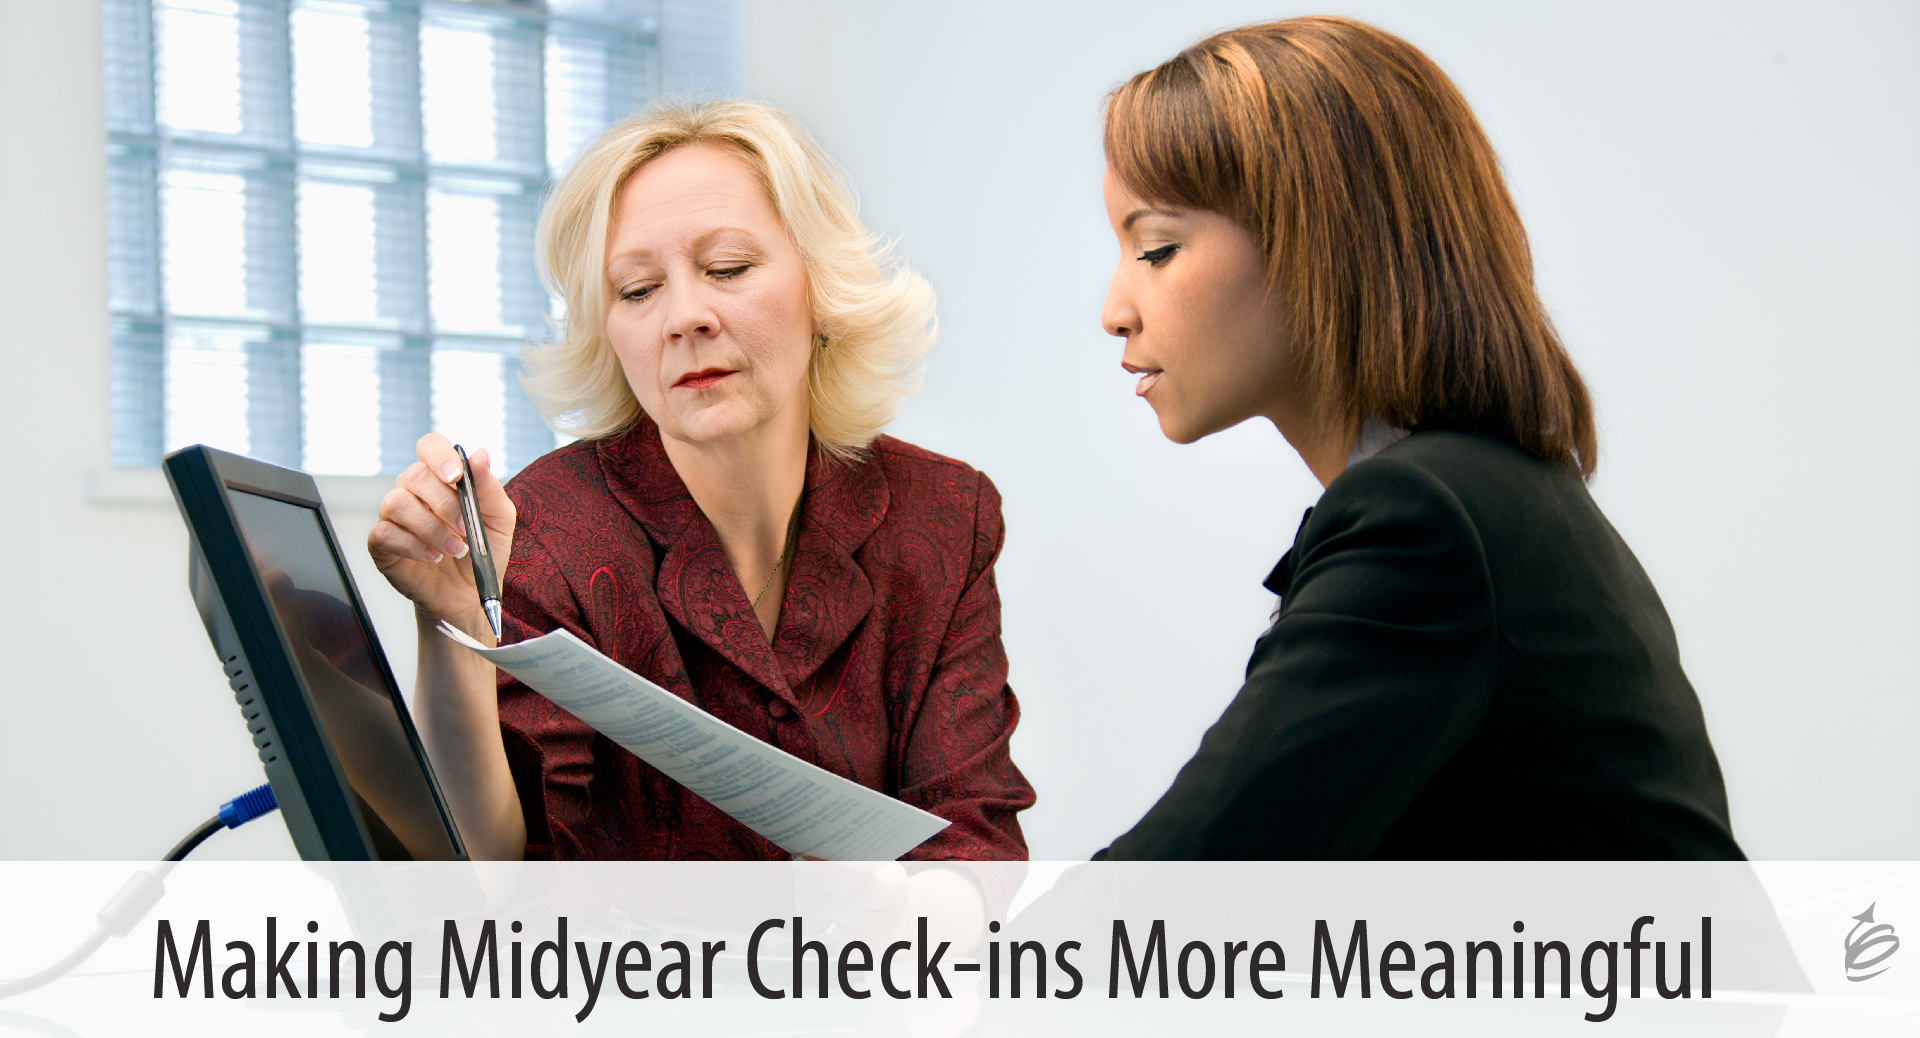 midyear check-ins